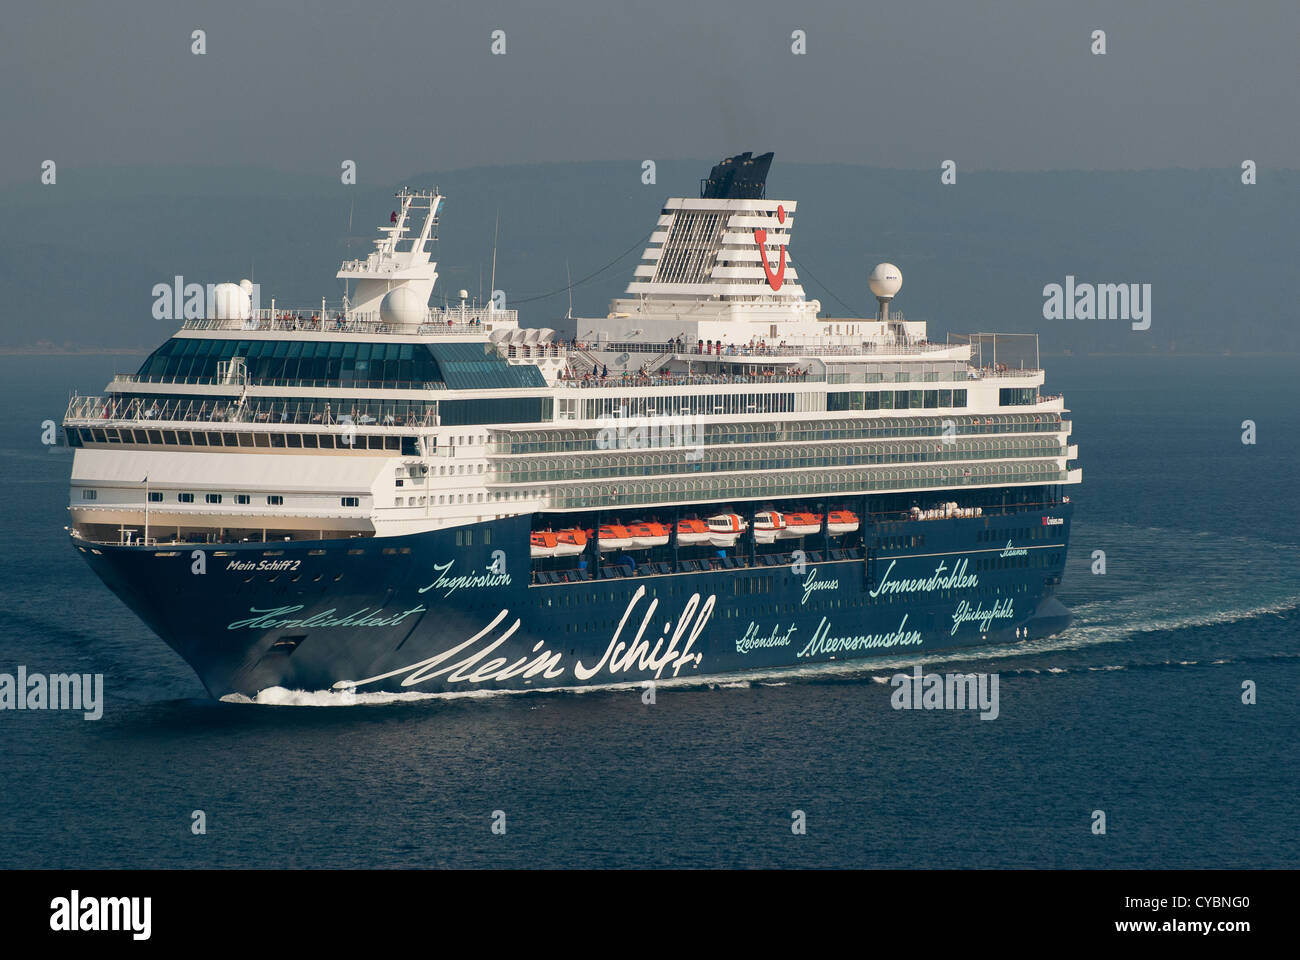 Cruise Liner Mein Schiff 2  sailng in the Dardanelles - Stock Image